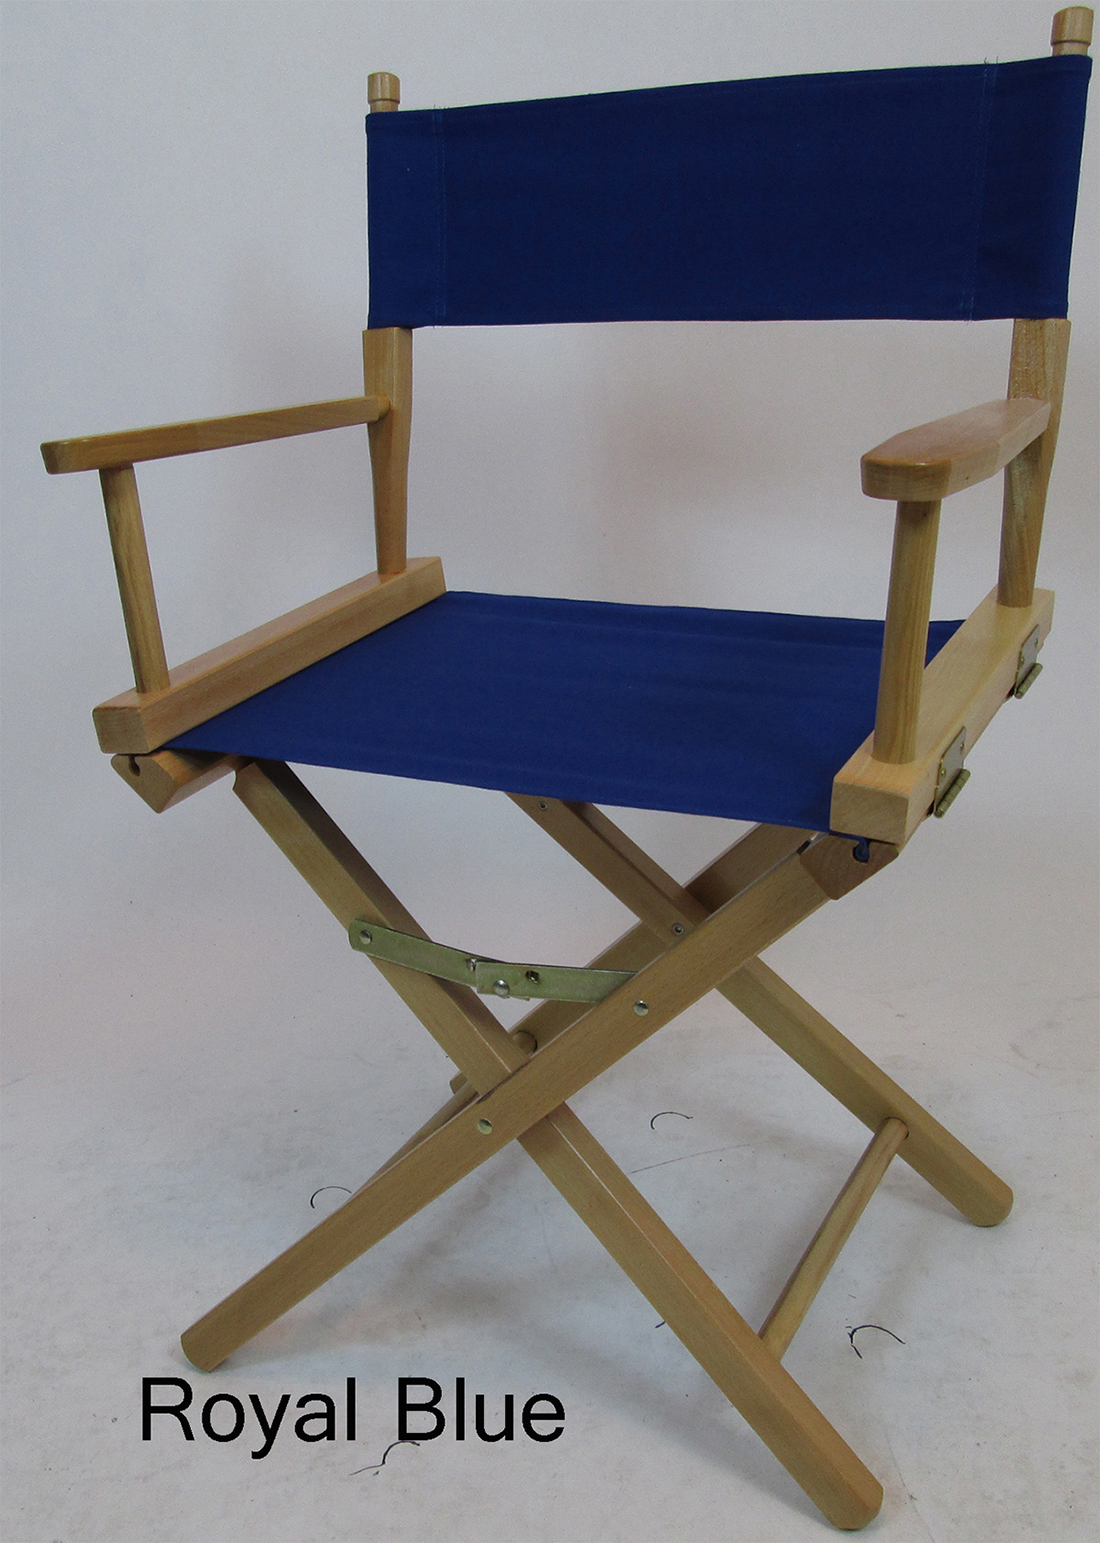 Limited Edition Directors Chair Replacement Canvas Cover Royal Blue Limit